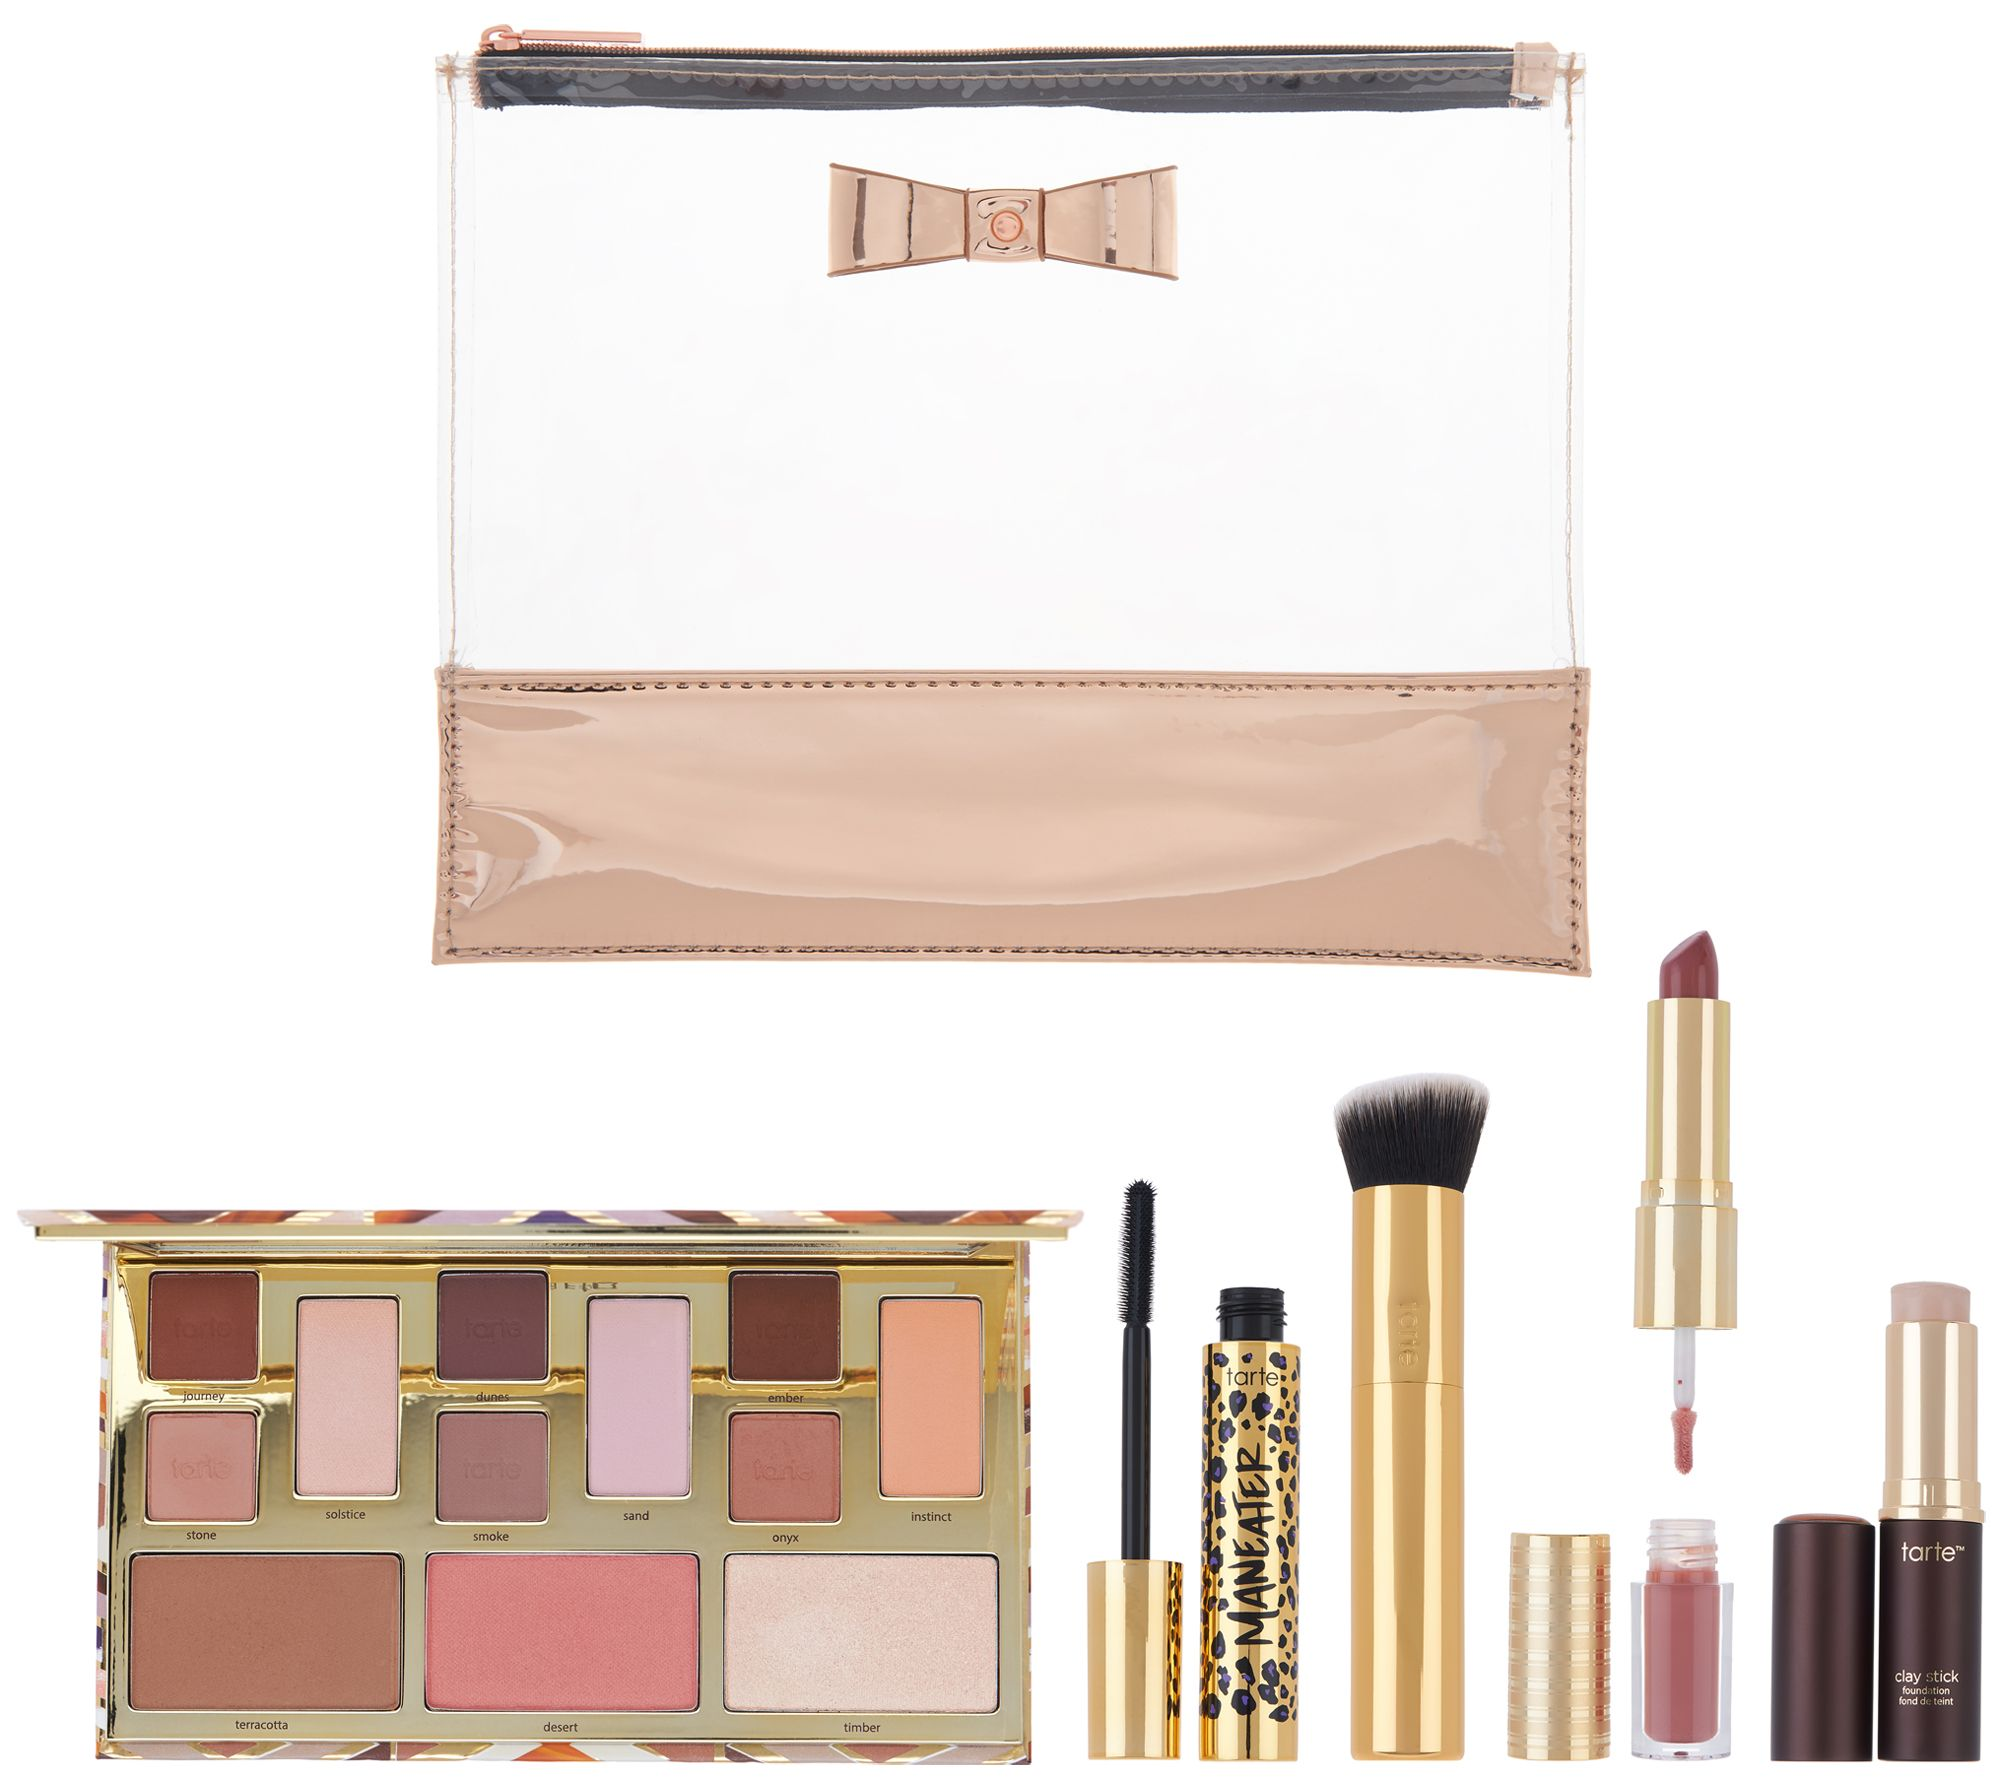 Tarte Tartelette 5 Piece Makeup Bag